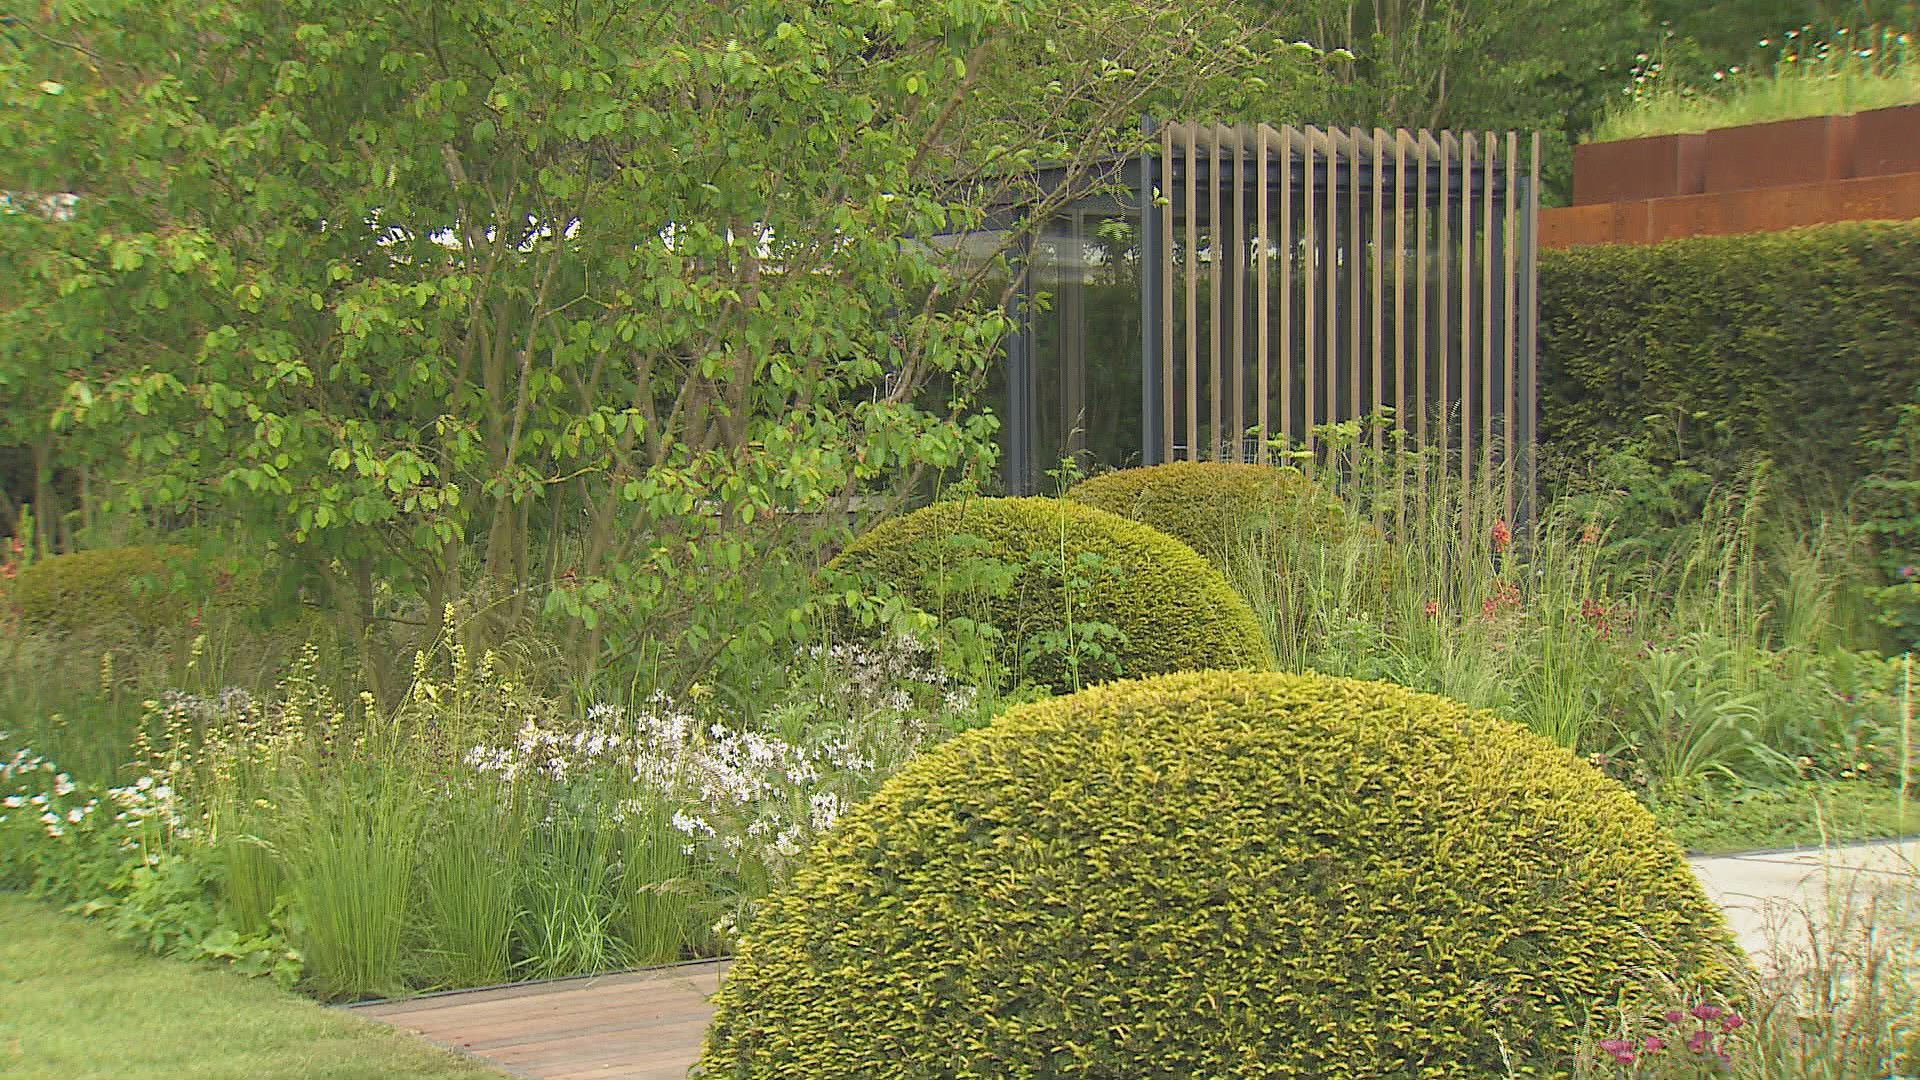 bbc two rhs chelsea flower show peoples choice award 2015 show garden tours 6 10 the telegraph garden